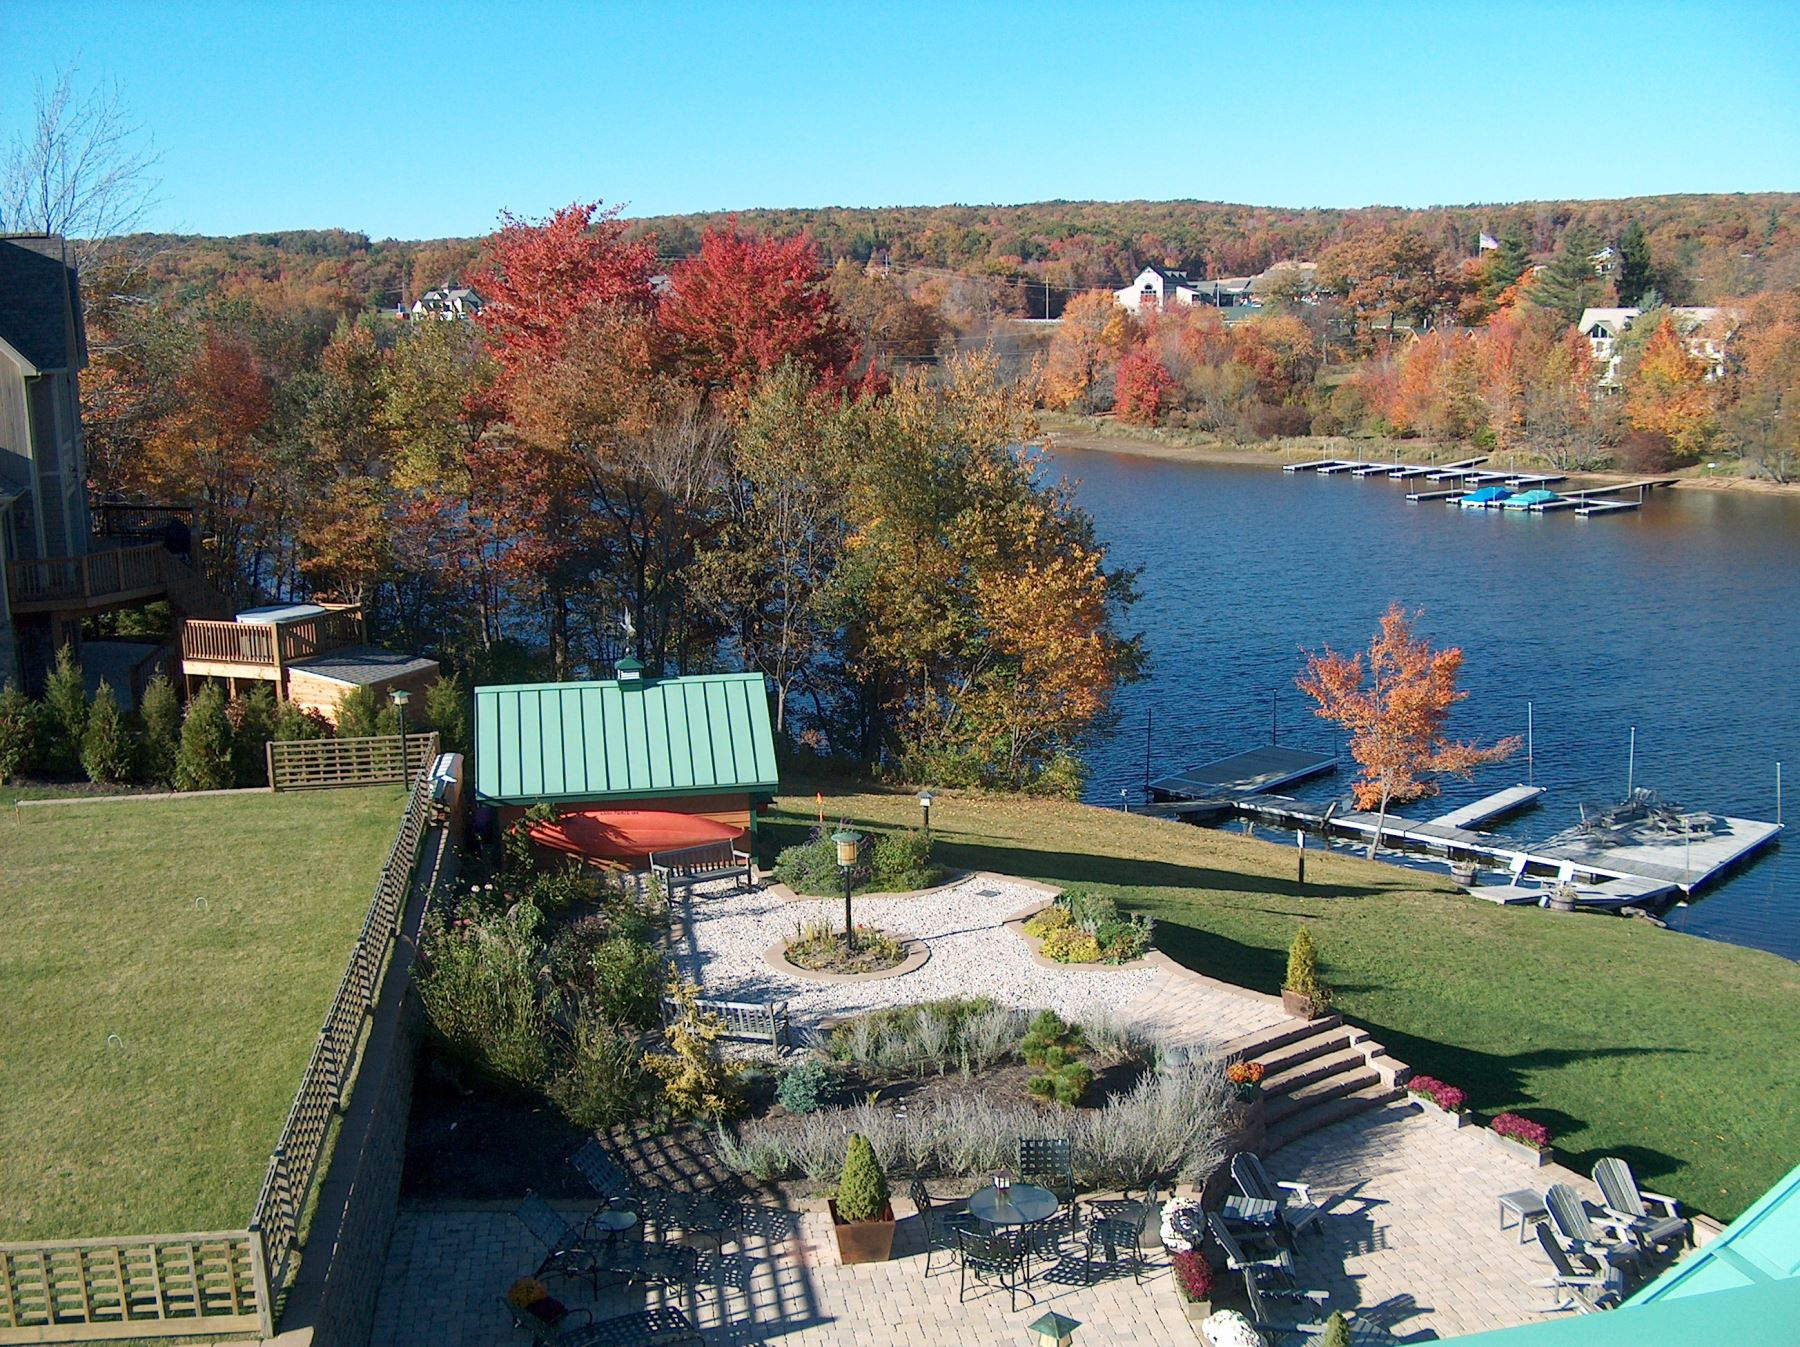 Where is Deep Creek Lake and why should I visit?